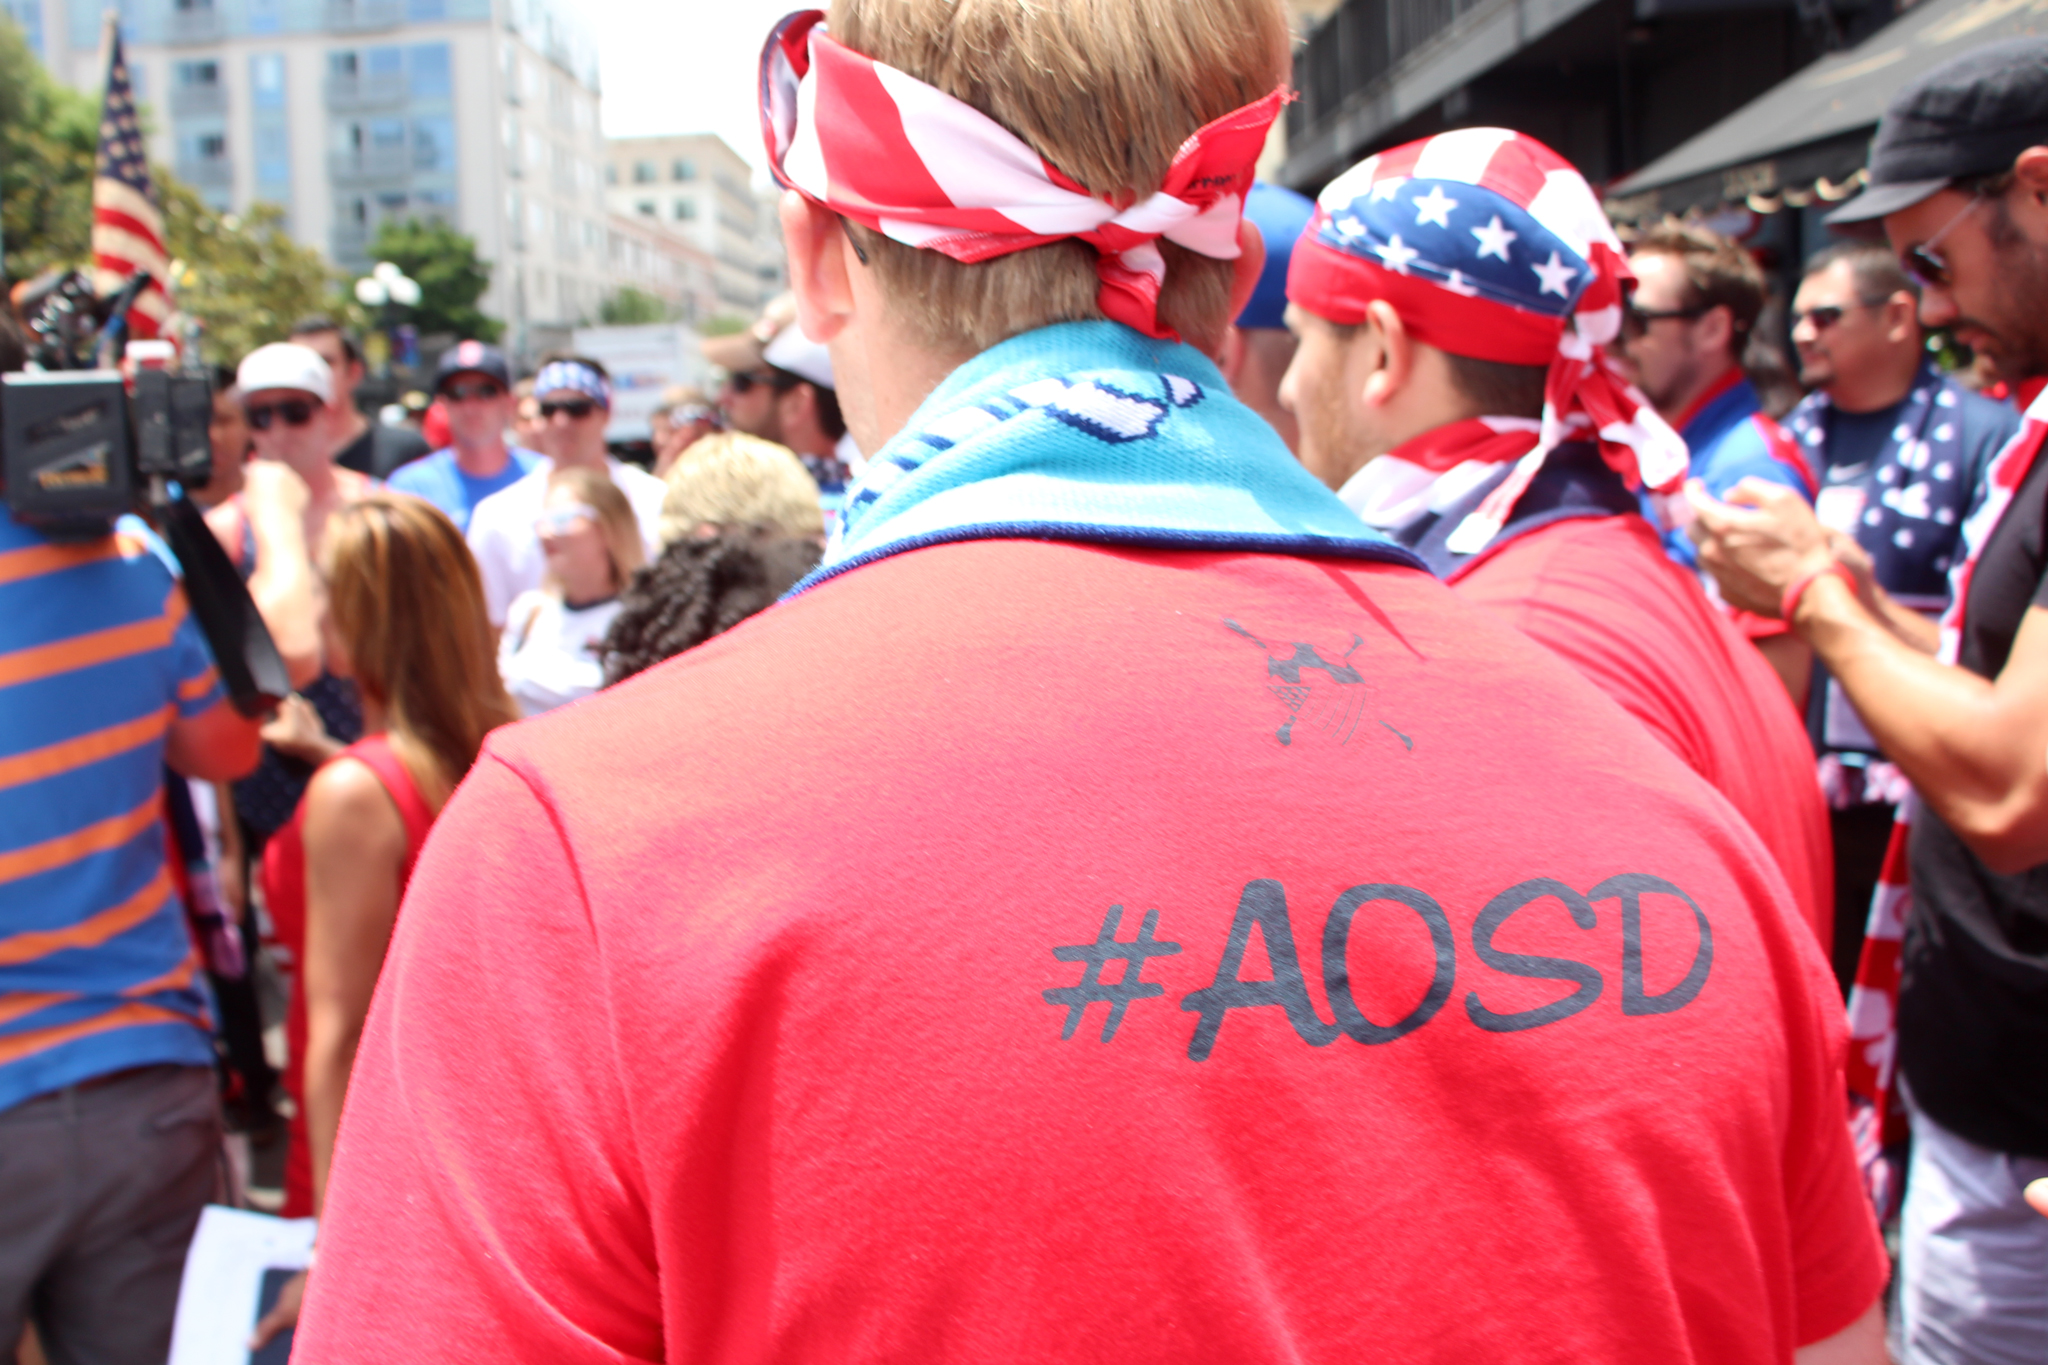 #AOSD - American Outlaws San Diego March to the Match